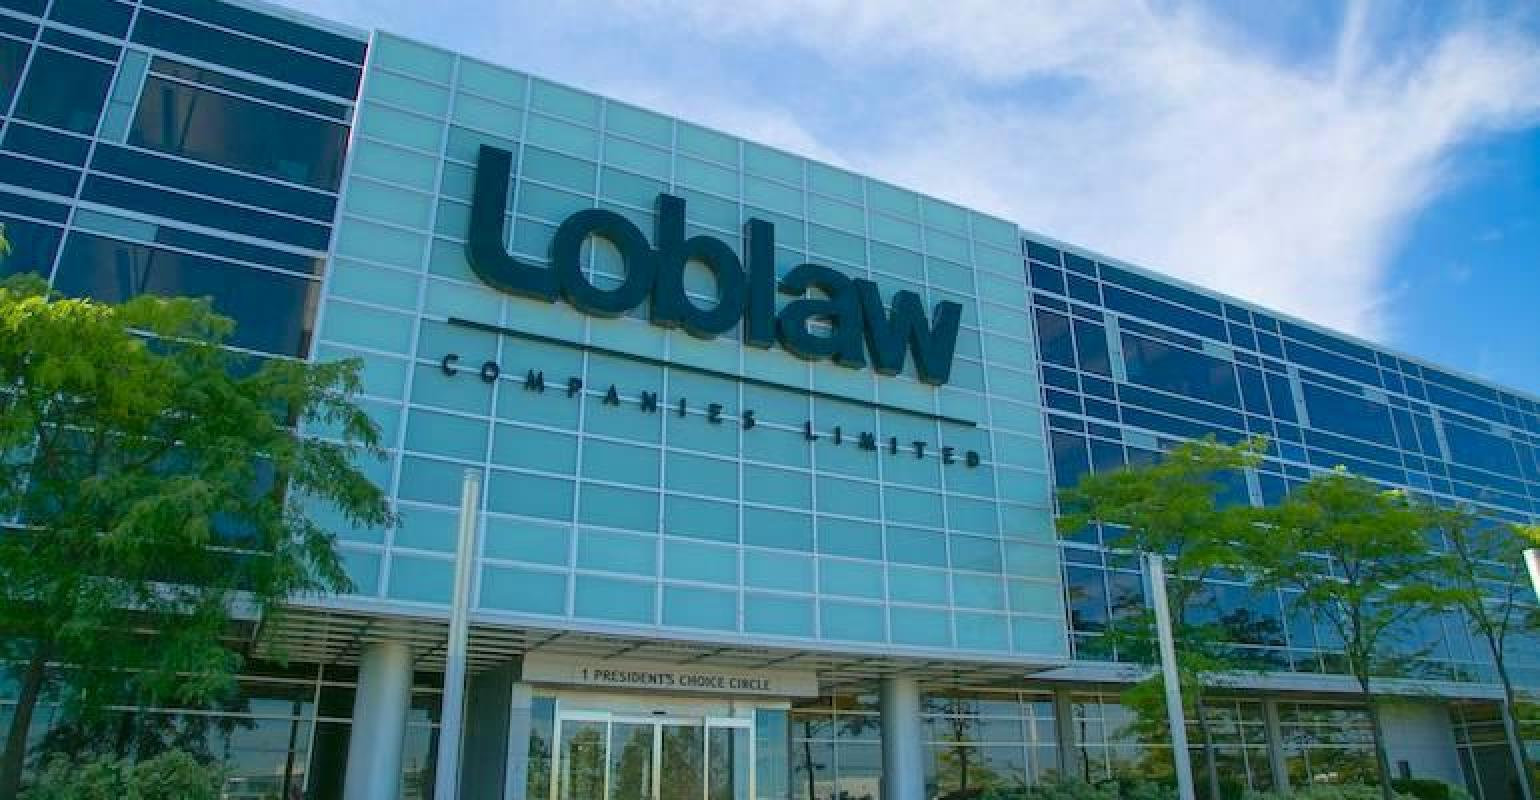 Loblaw realigns leadership with plan to sell Weston Foods